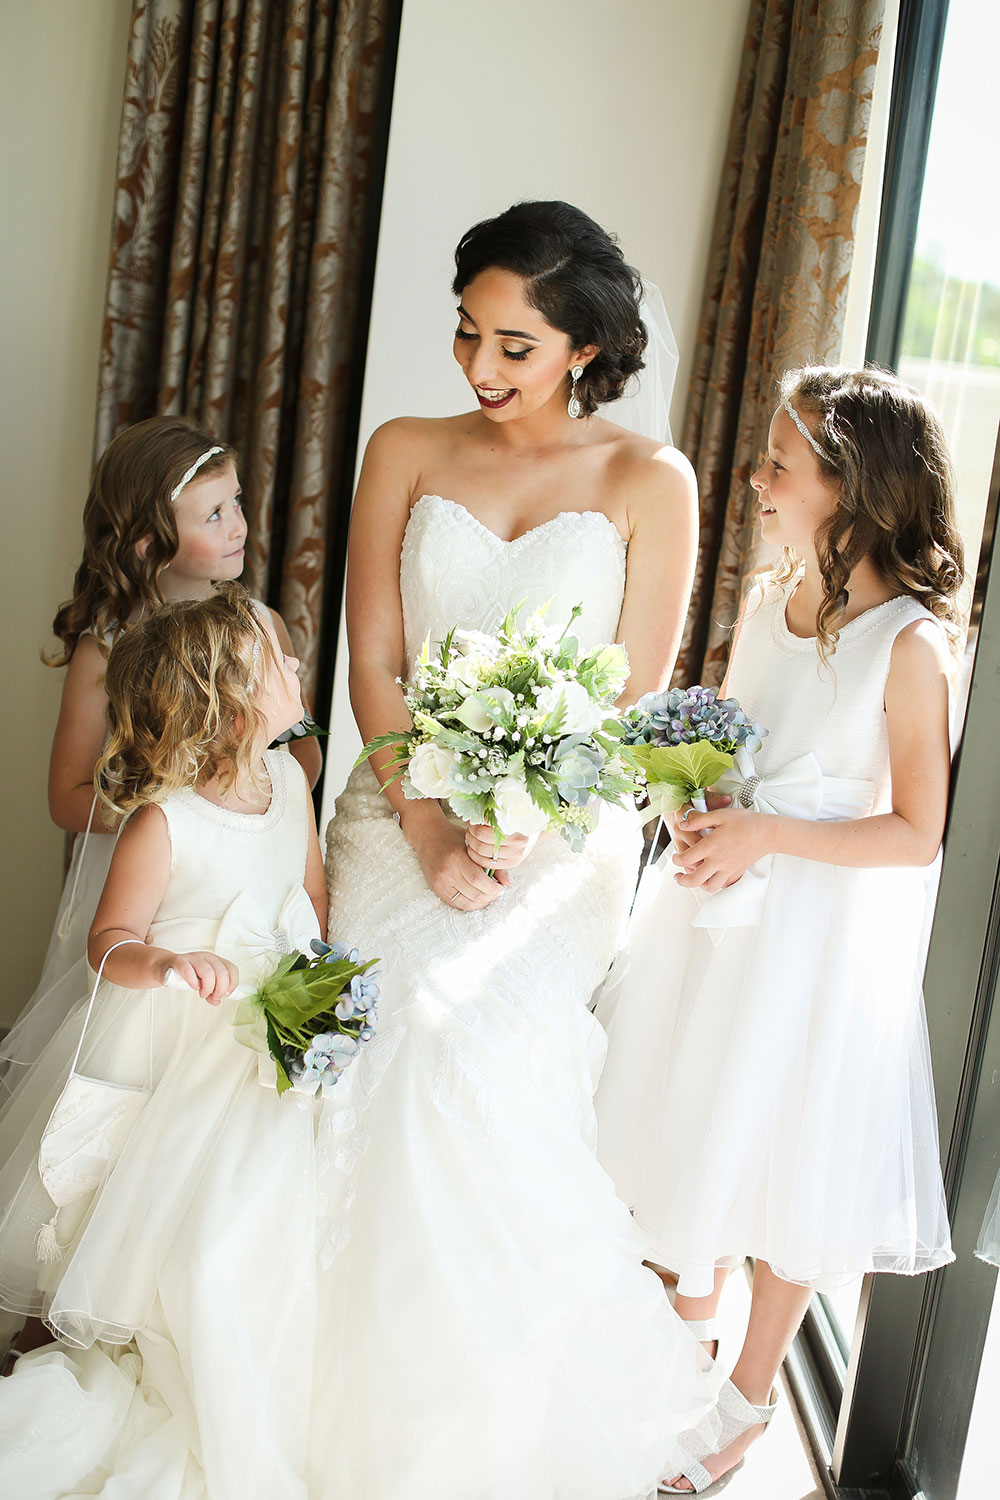 Lisa-Marie and her flowergirls